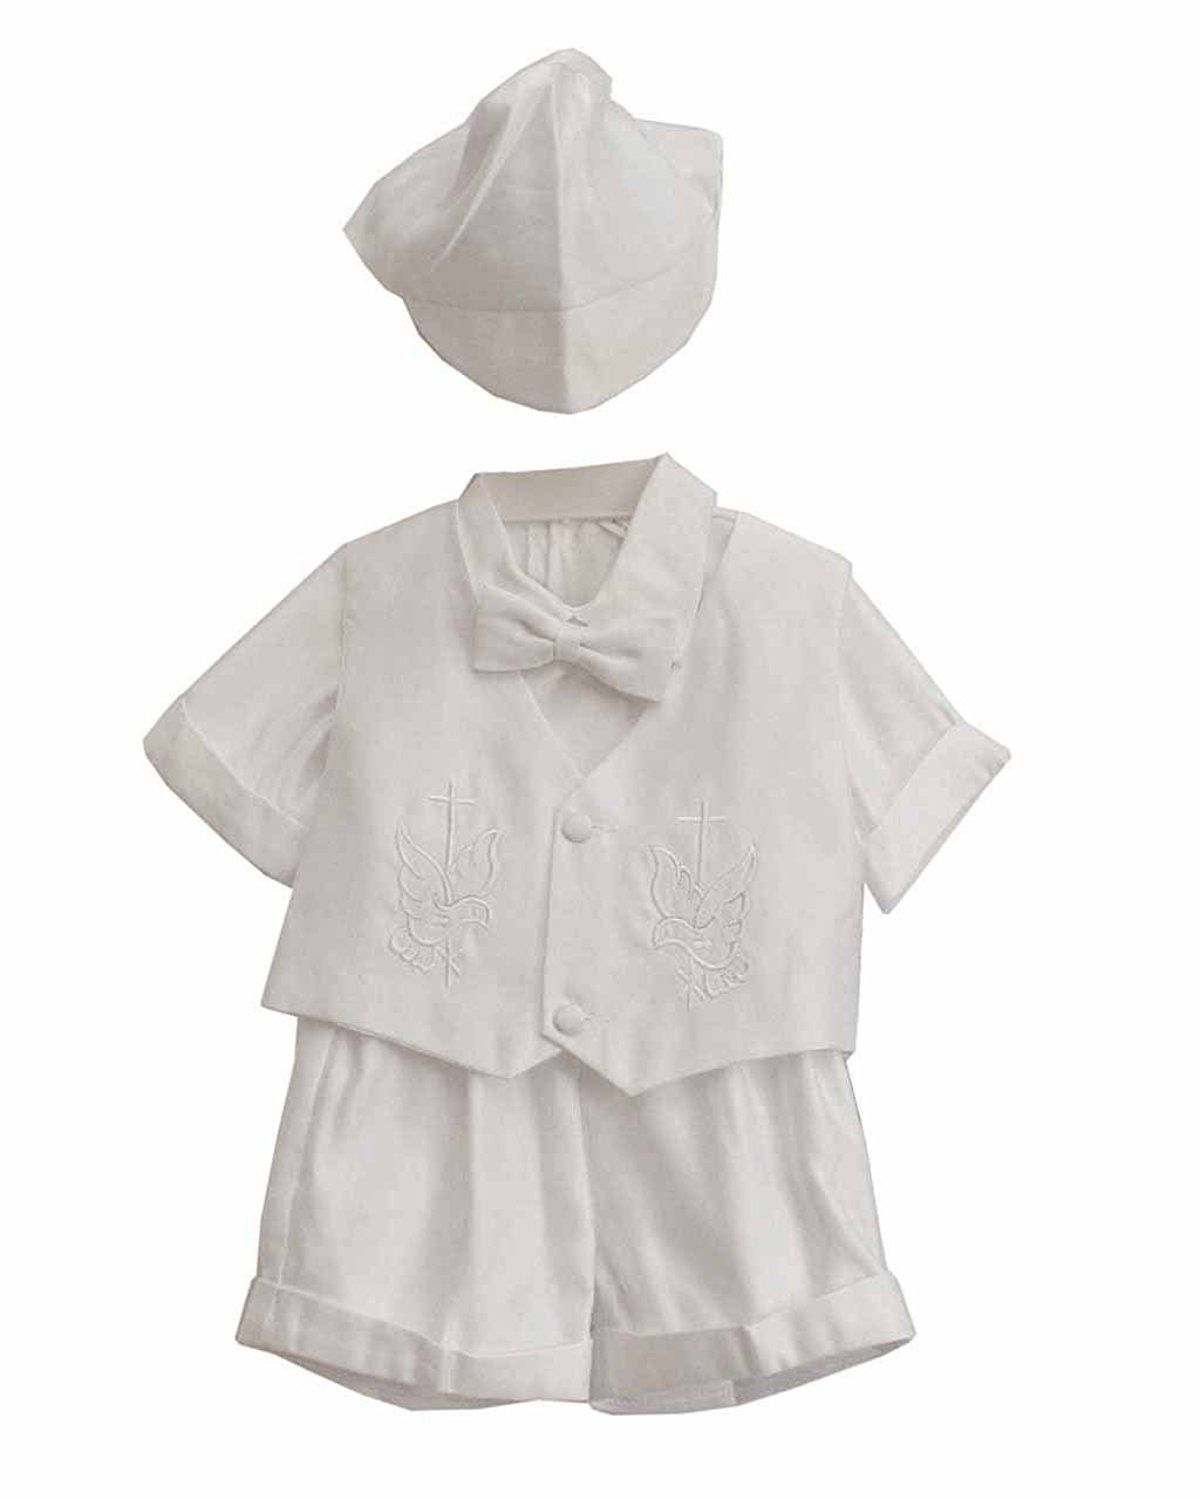 57140d084 Amazon.com: White Christian Baby Boy Bird Pattern Tuxedo Suit Set with Hat:  Infant And Toddler Christening Apparel: Clothing